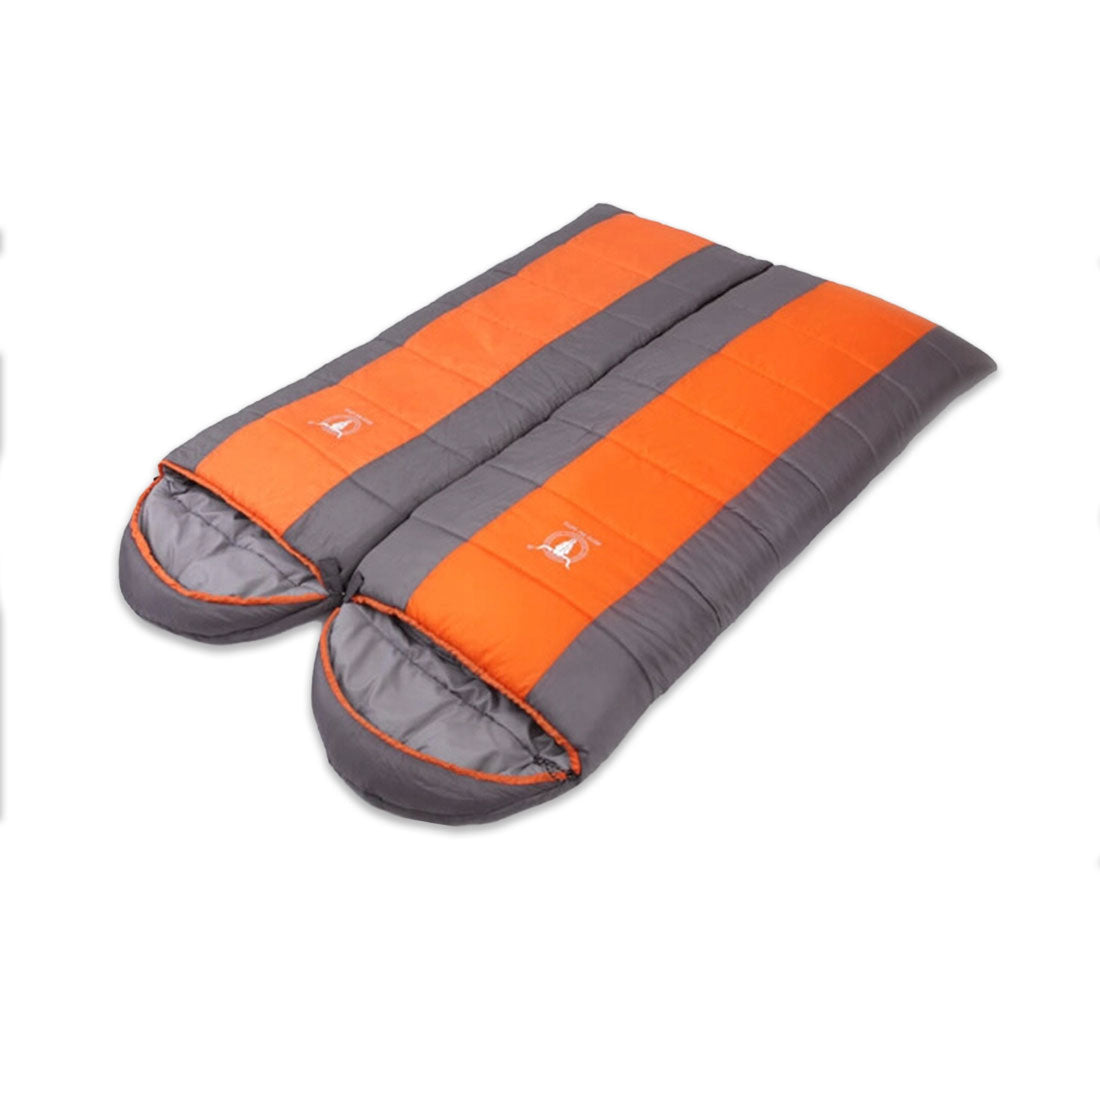 Double Camping Envelope Twin Sleeping Bag Thermal Tent Hiking Winter -15° C - orange